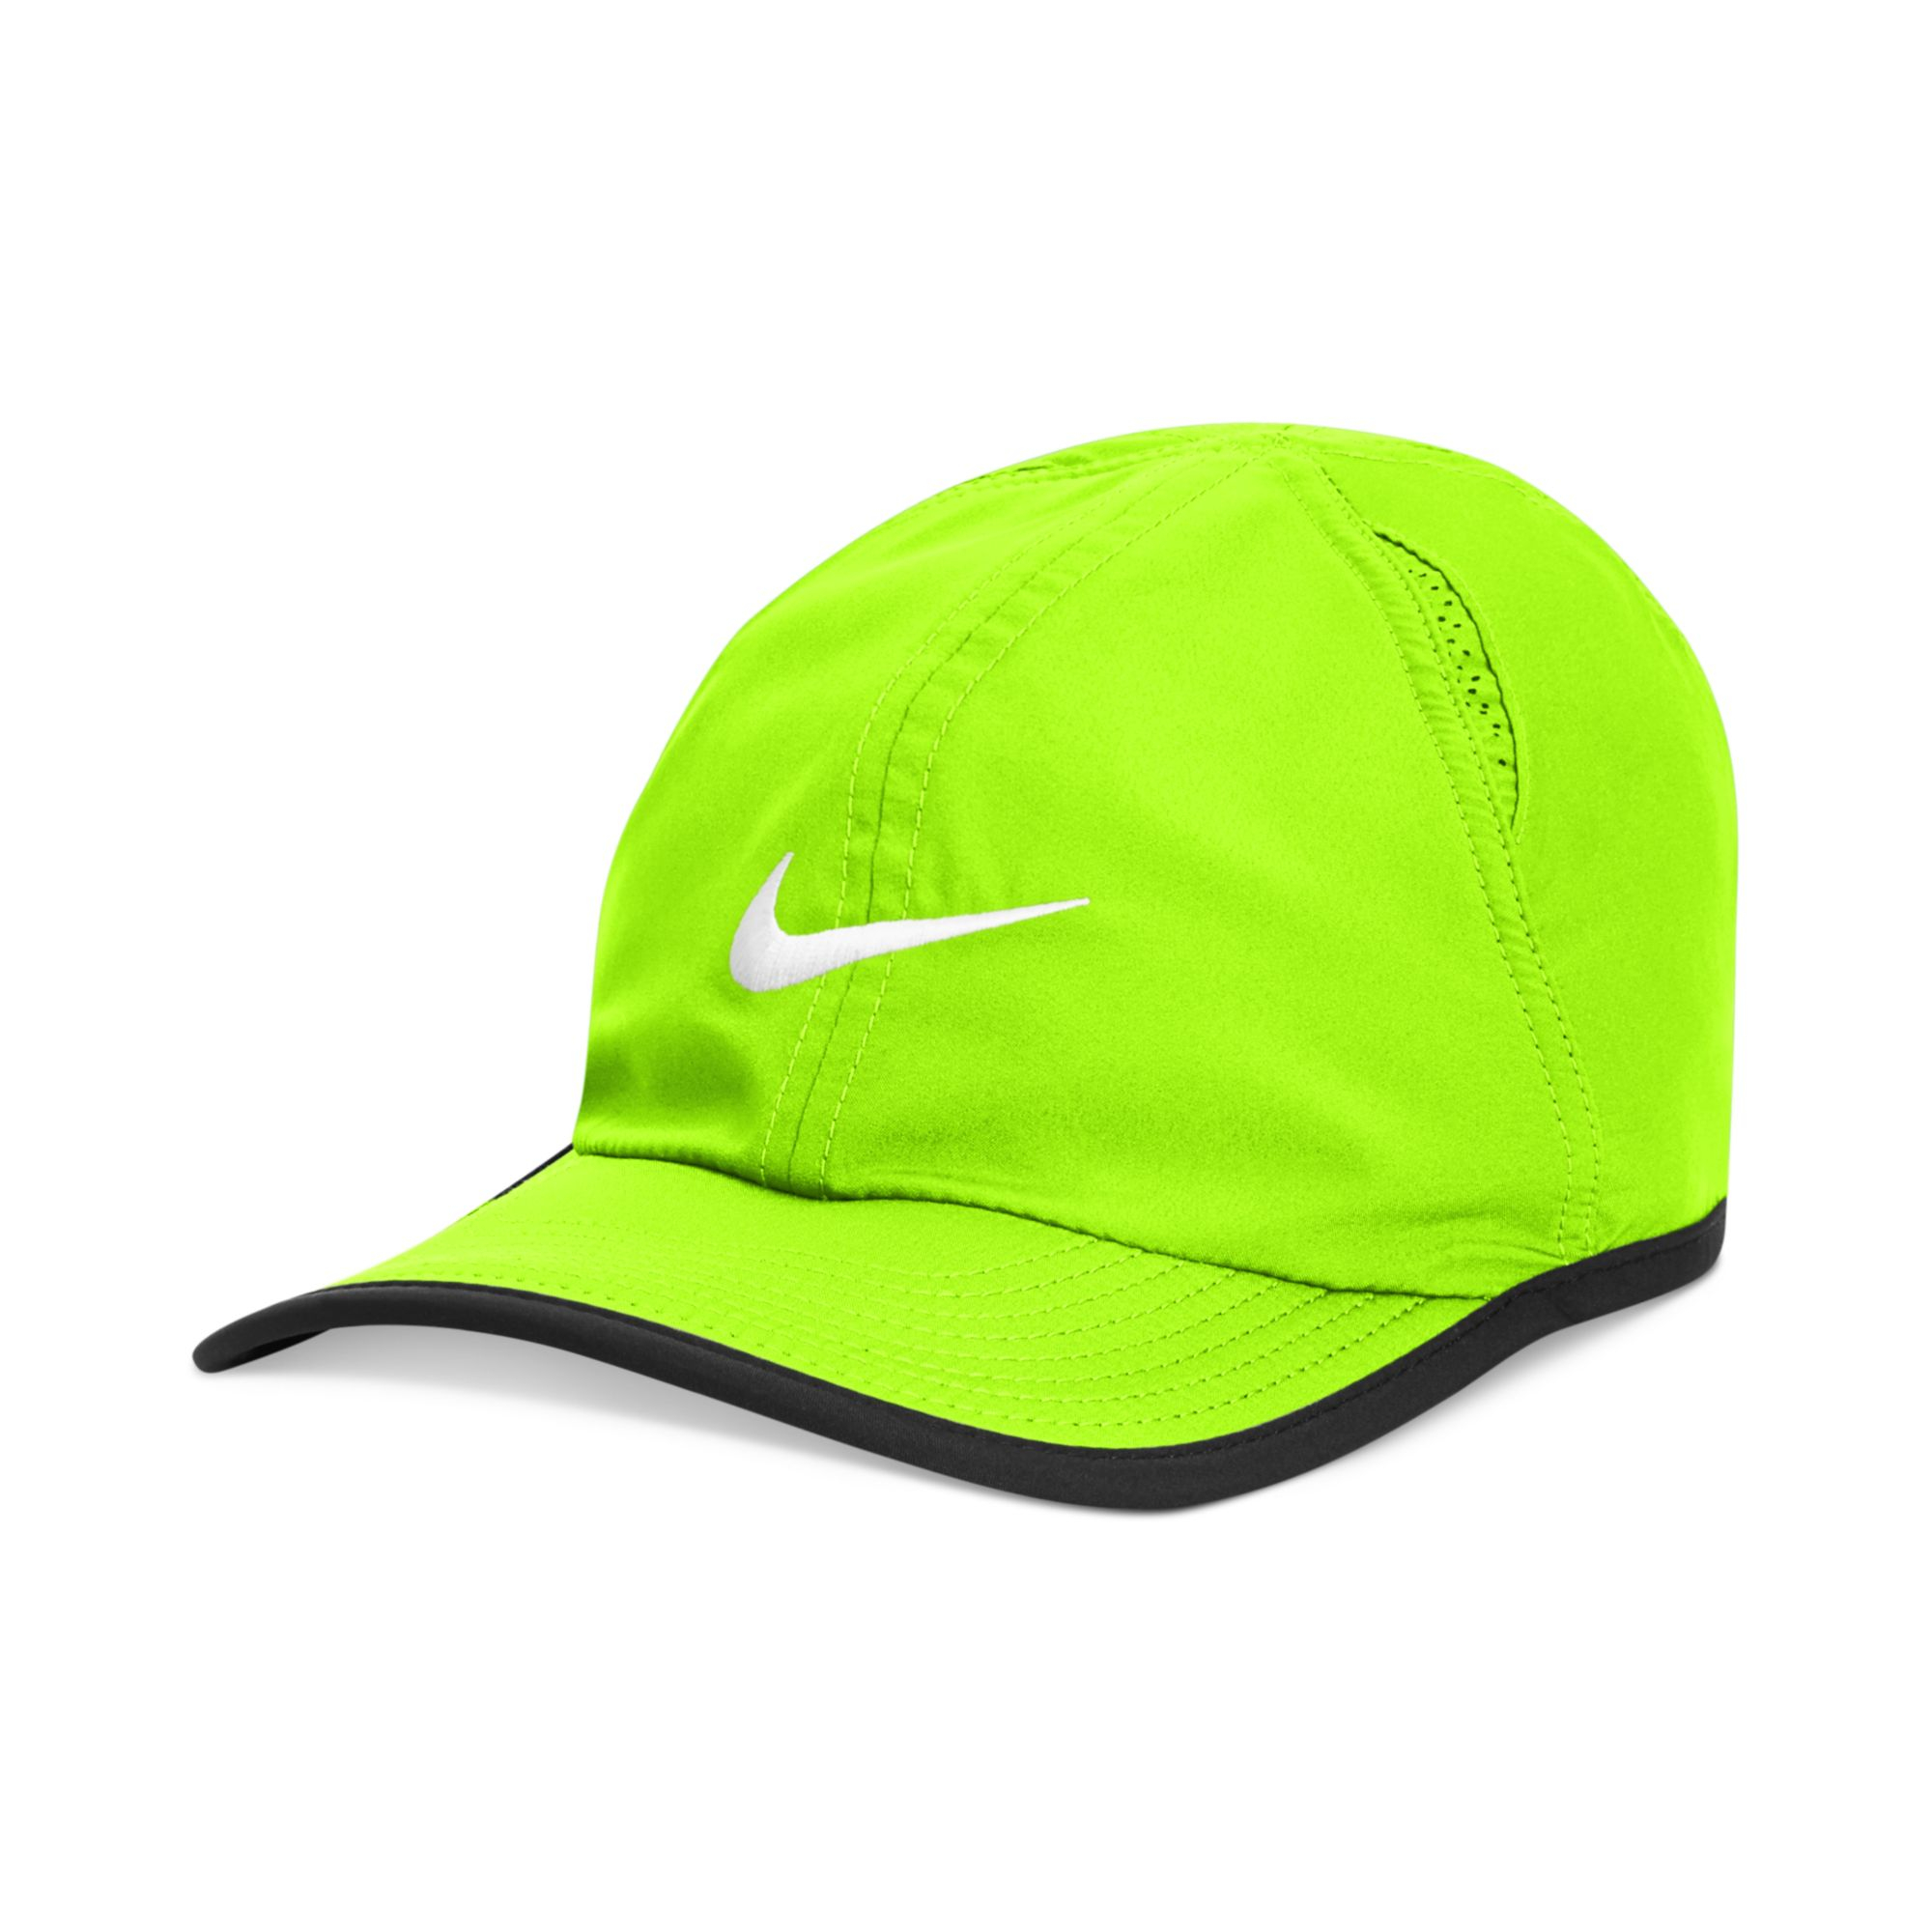 Lyst - Nike Drifit Featherlight Performance Hat 20 in Green for Men c77e1d833a9